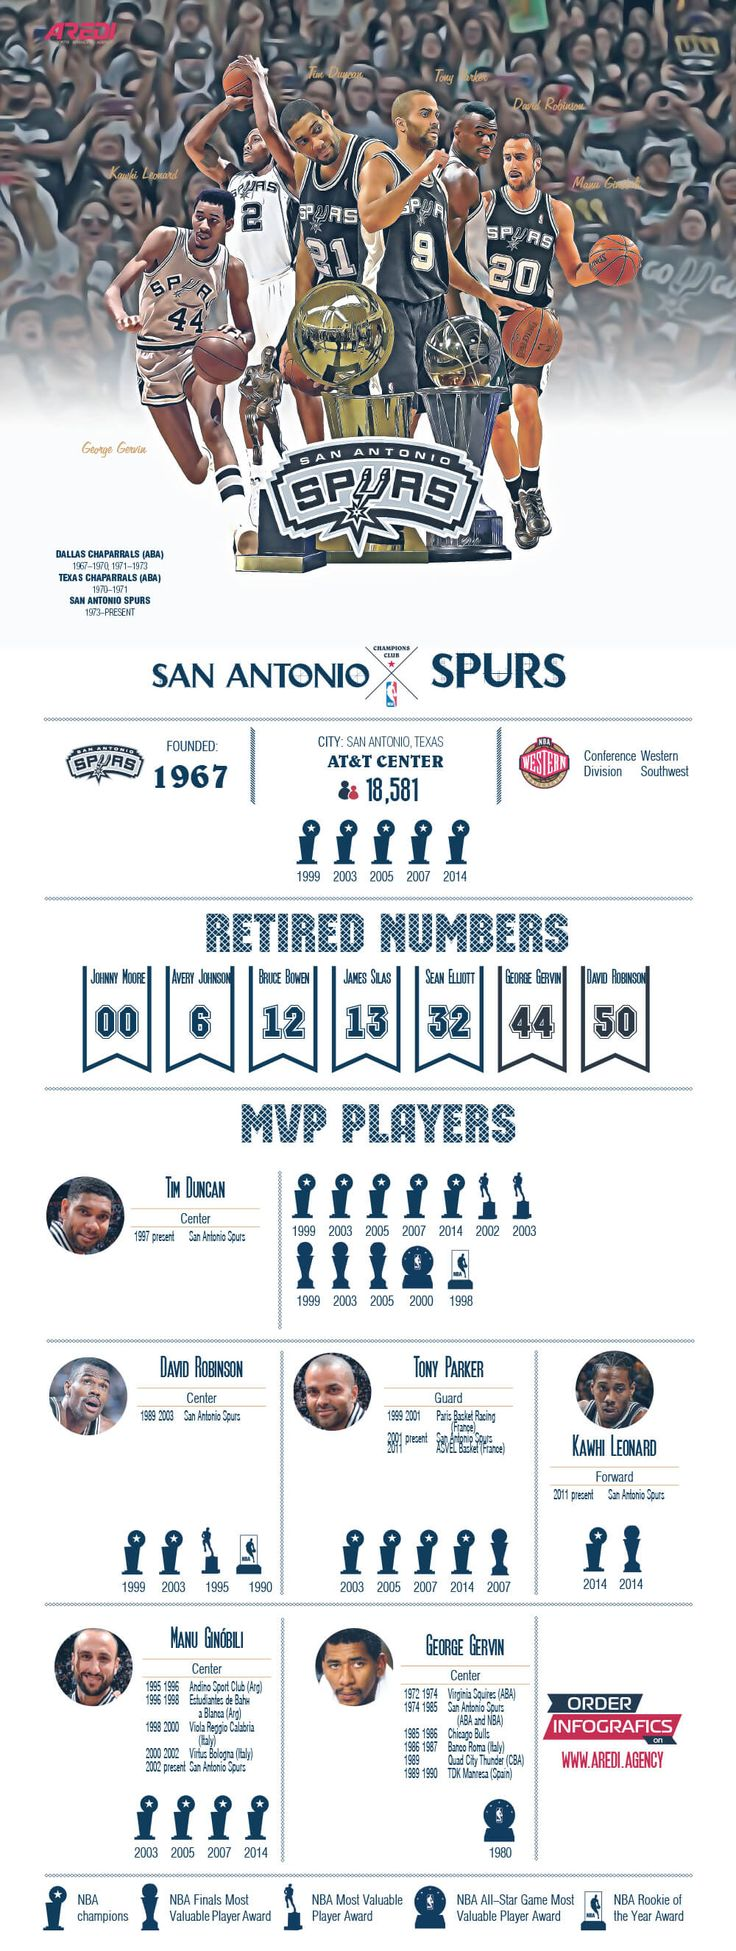 San Antonio Spurs, infographic, art, sport, create, design, basketball, club, branding, NBA, MVP legends, histoty, All Star game, Tim Duncan, Tony Parker, Manu Ginóbili,  Kawhi Leonard, George Gervin, David Robinson, #sportaredi